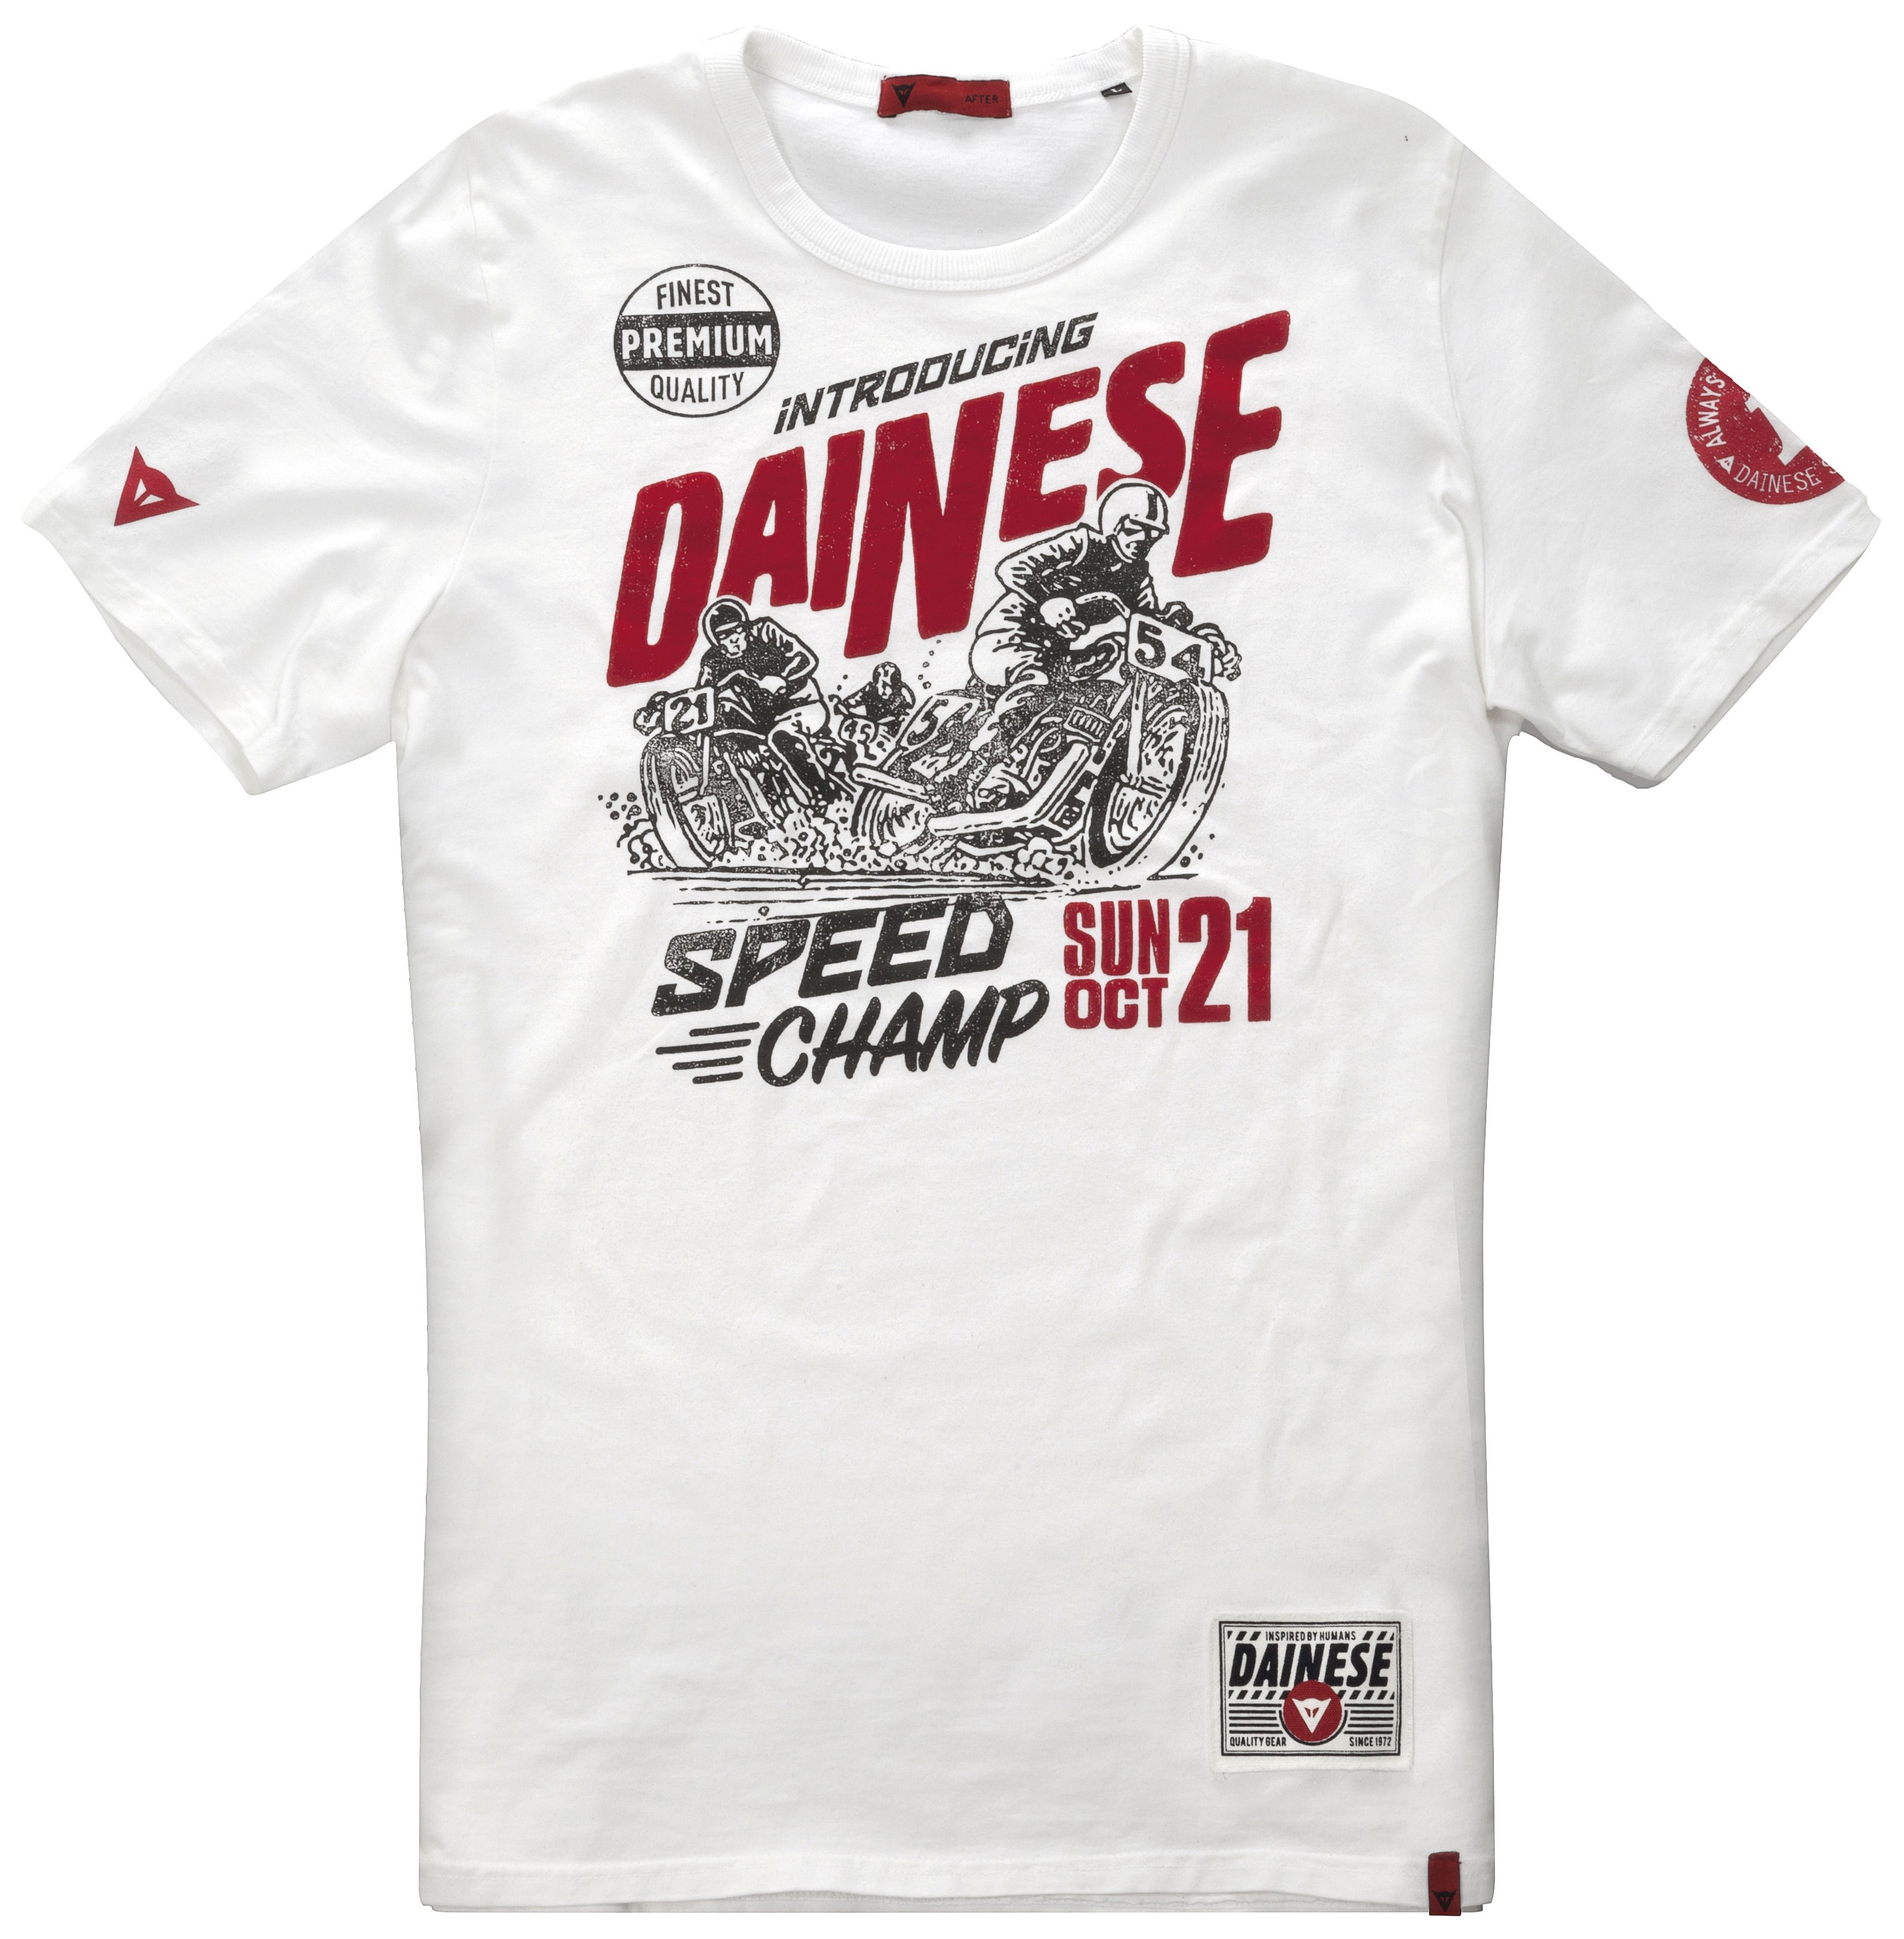 dainese speed champ t shirt revzilla. Black Bedroom Furniture Sets. Home Design Ideas